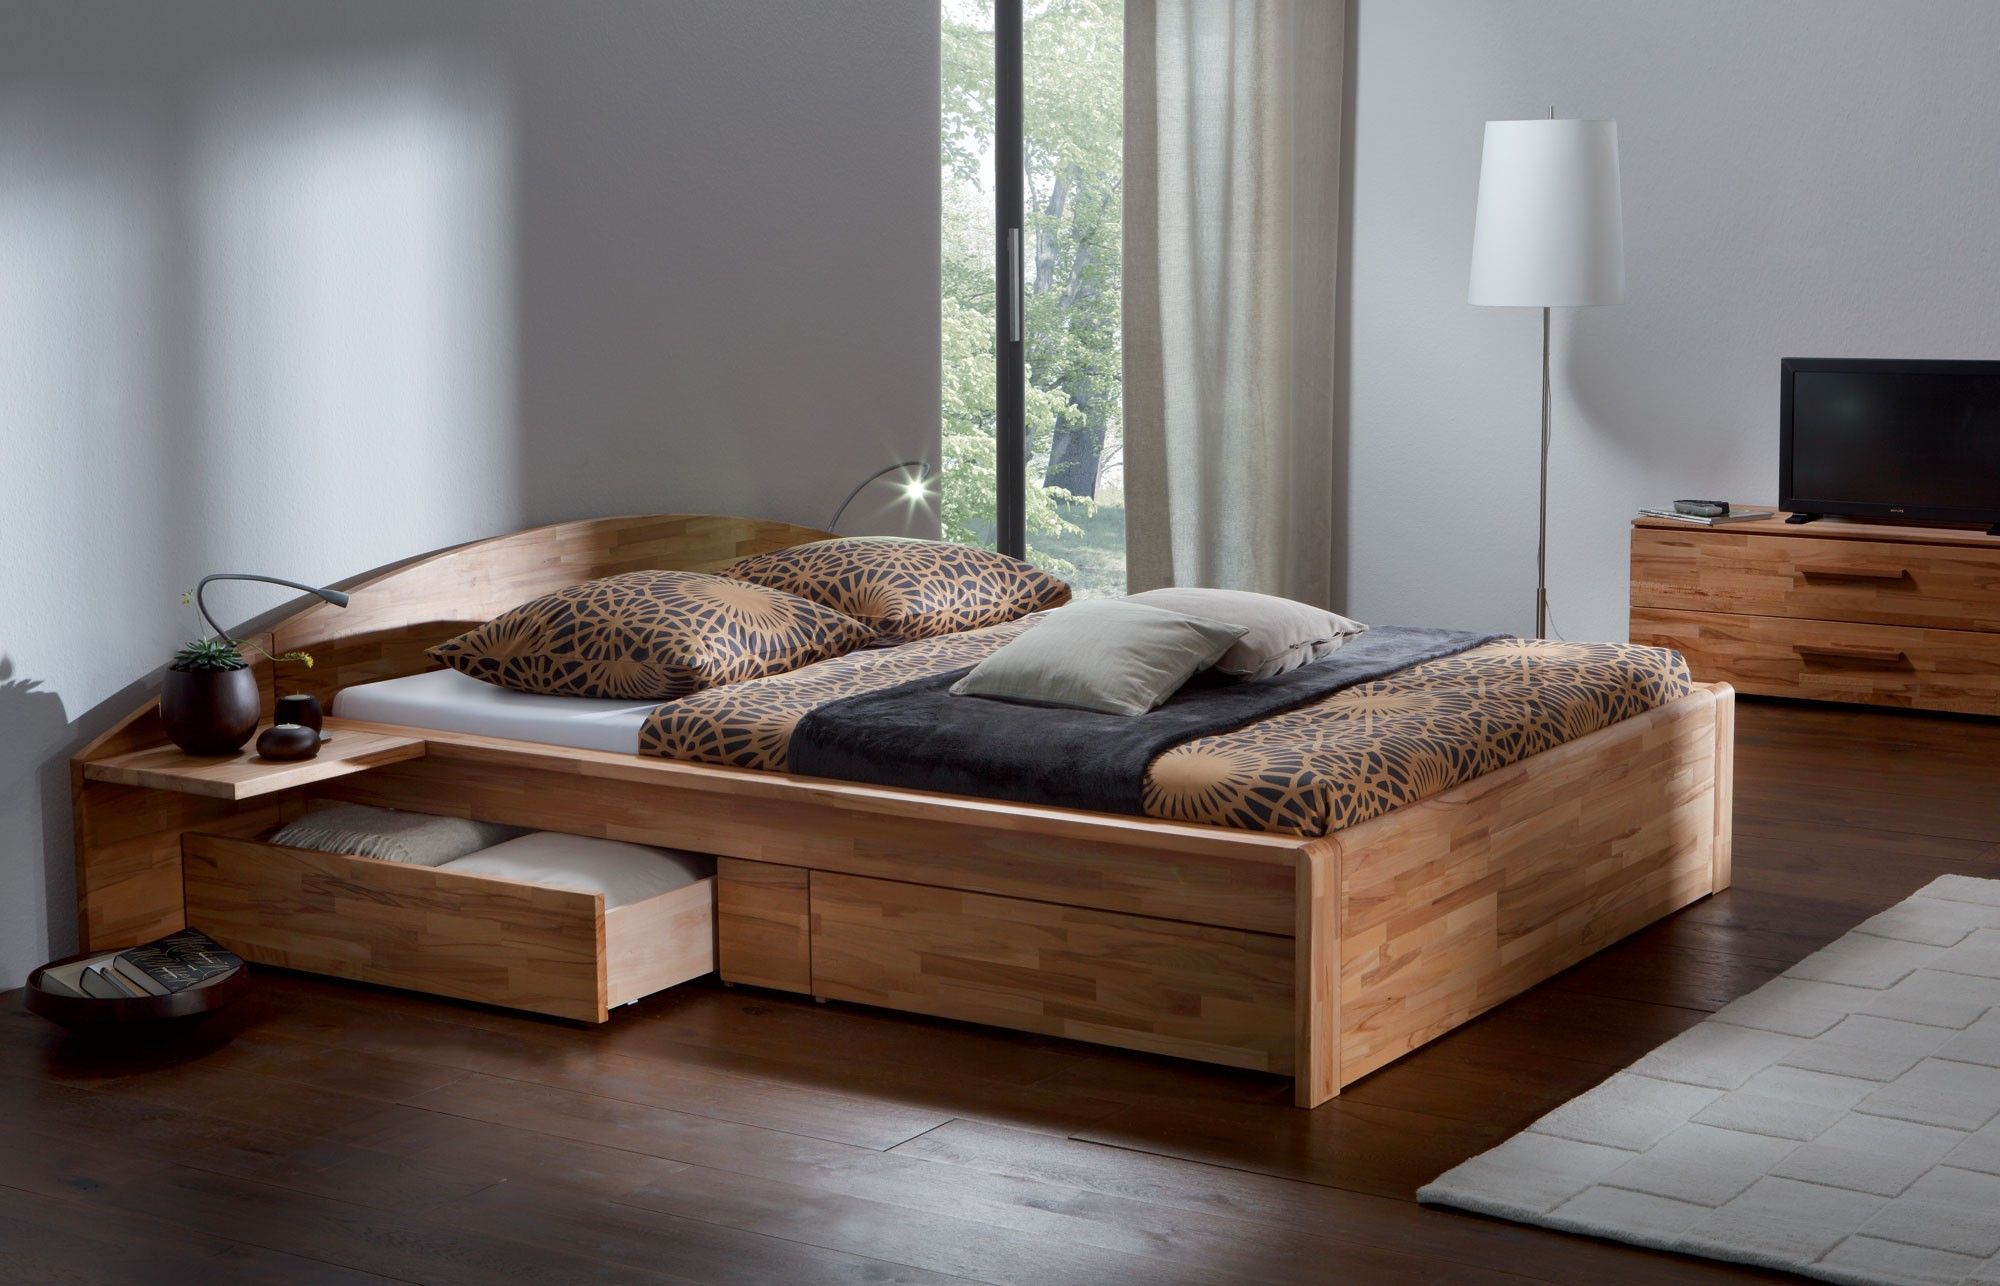 Wooden Beds Solid Heartbeech Natural Oiled Solid Wooden Bed Jpeg 2 000